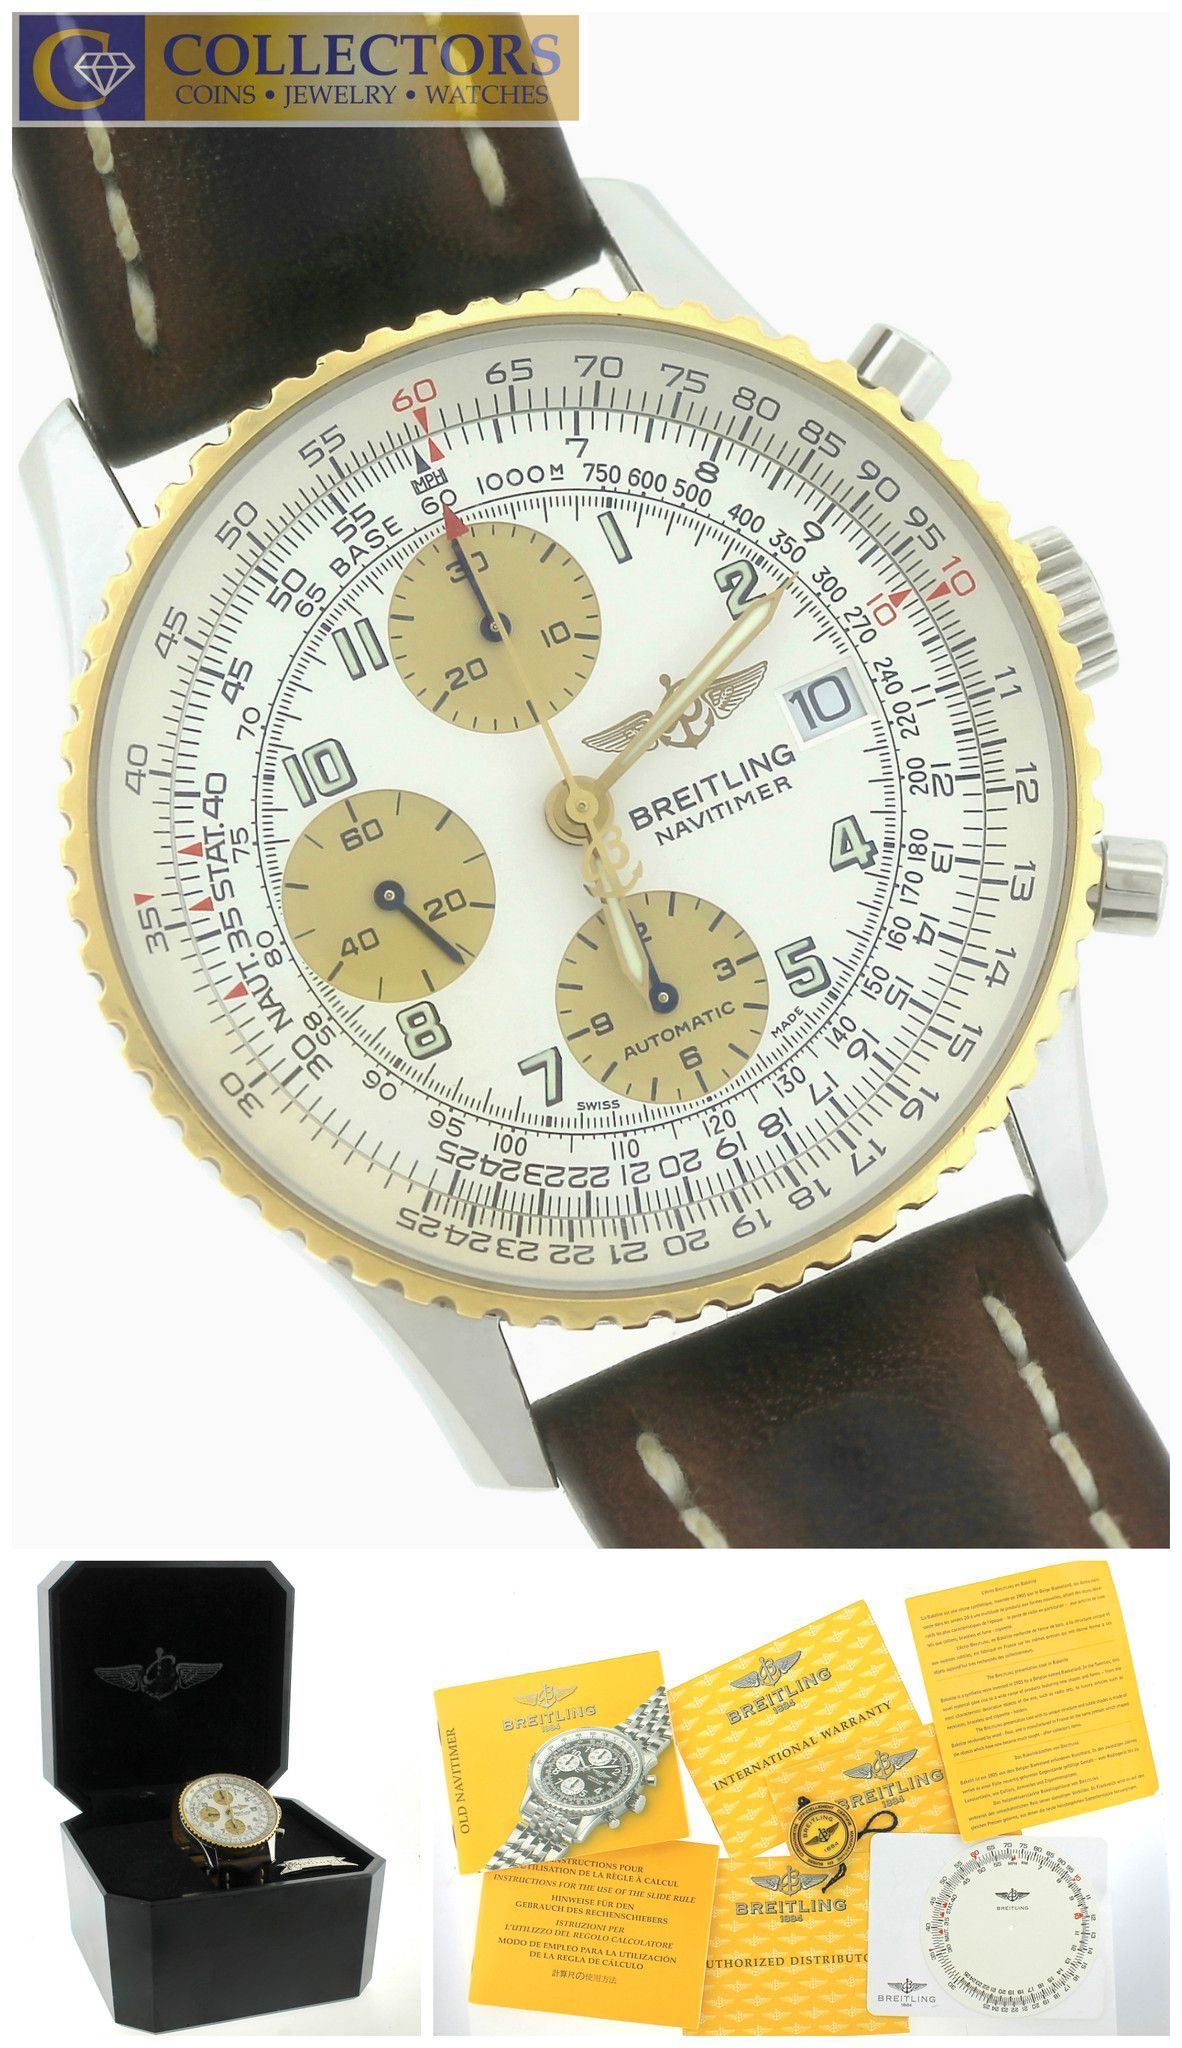 MINT Breitling Navitimer D13322 Two-Tone 18K Gold Stainless Brown 41.8mm Watch